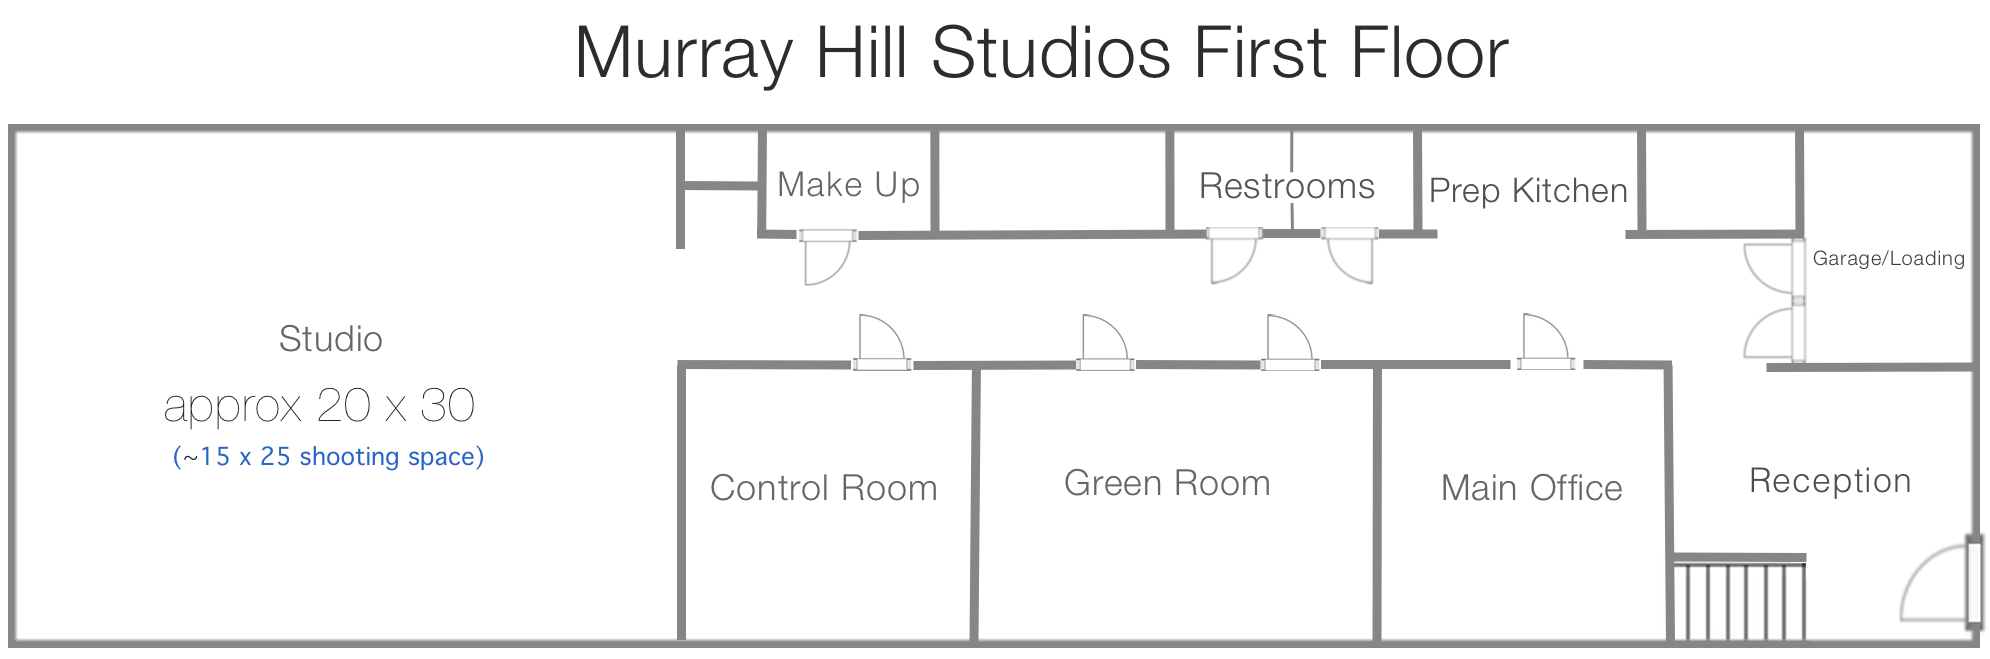 MHS_FloorPlanDownstairs.png